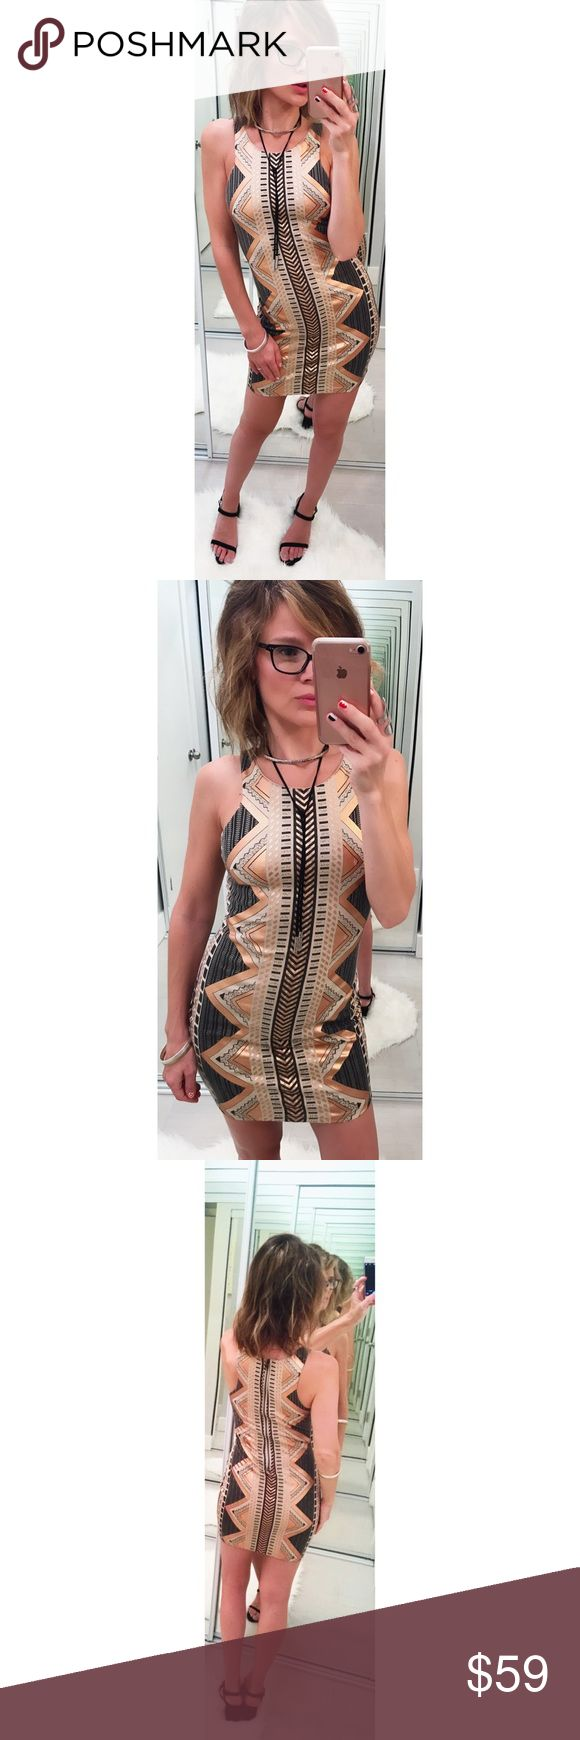 ➡Reverse High Neck Aztec Body-Conscious Dress⬅ A body conscious mini dress that looks like you're wearing metallic tattoos. It matches perfectly with jewelry and a summer tan.  🛍Shop your way: 💕Offers welcome. 💕Take 20% off bundles automatically. 💕 Make an offer on your bundle. 💕Receive special offers from me on your bundles.  💕 Happy Poshing! Reverse Dresses Mini